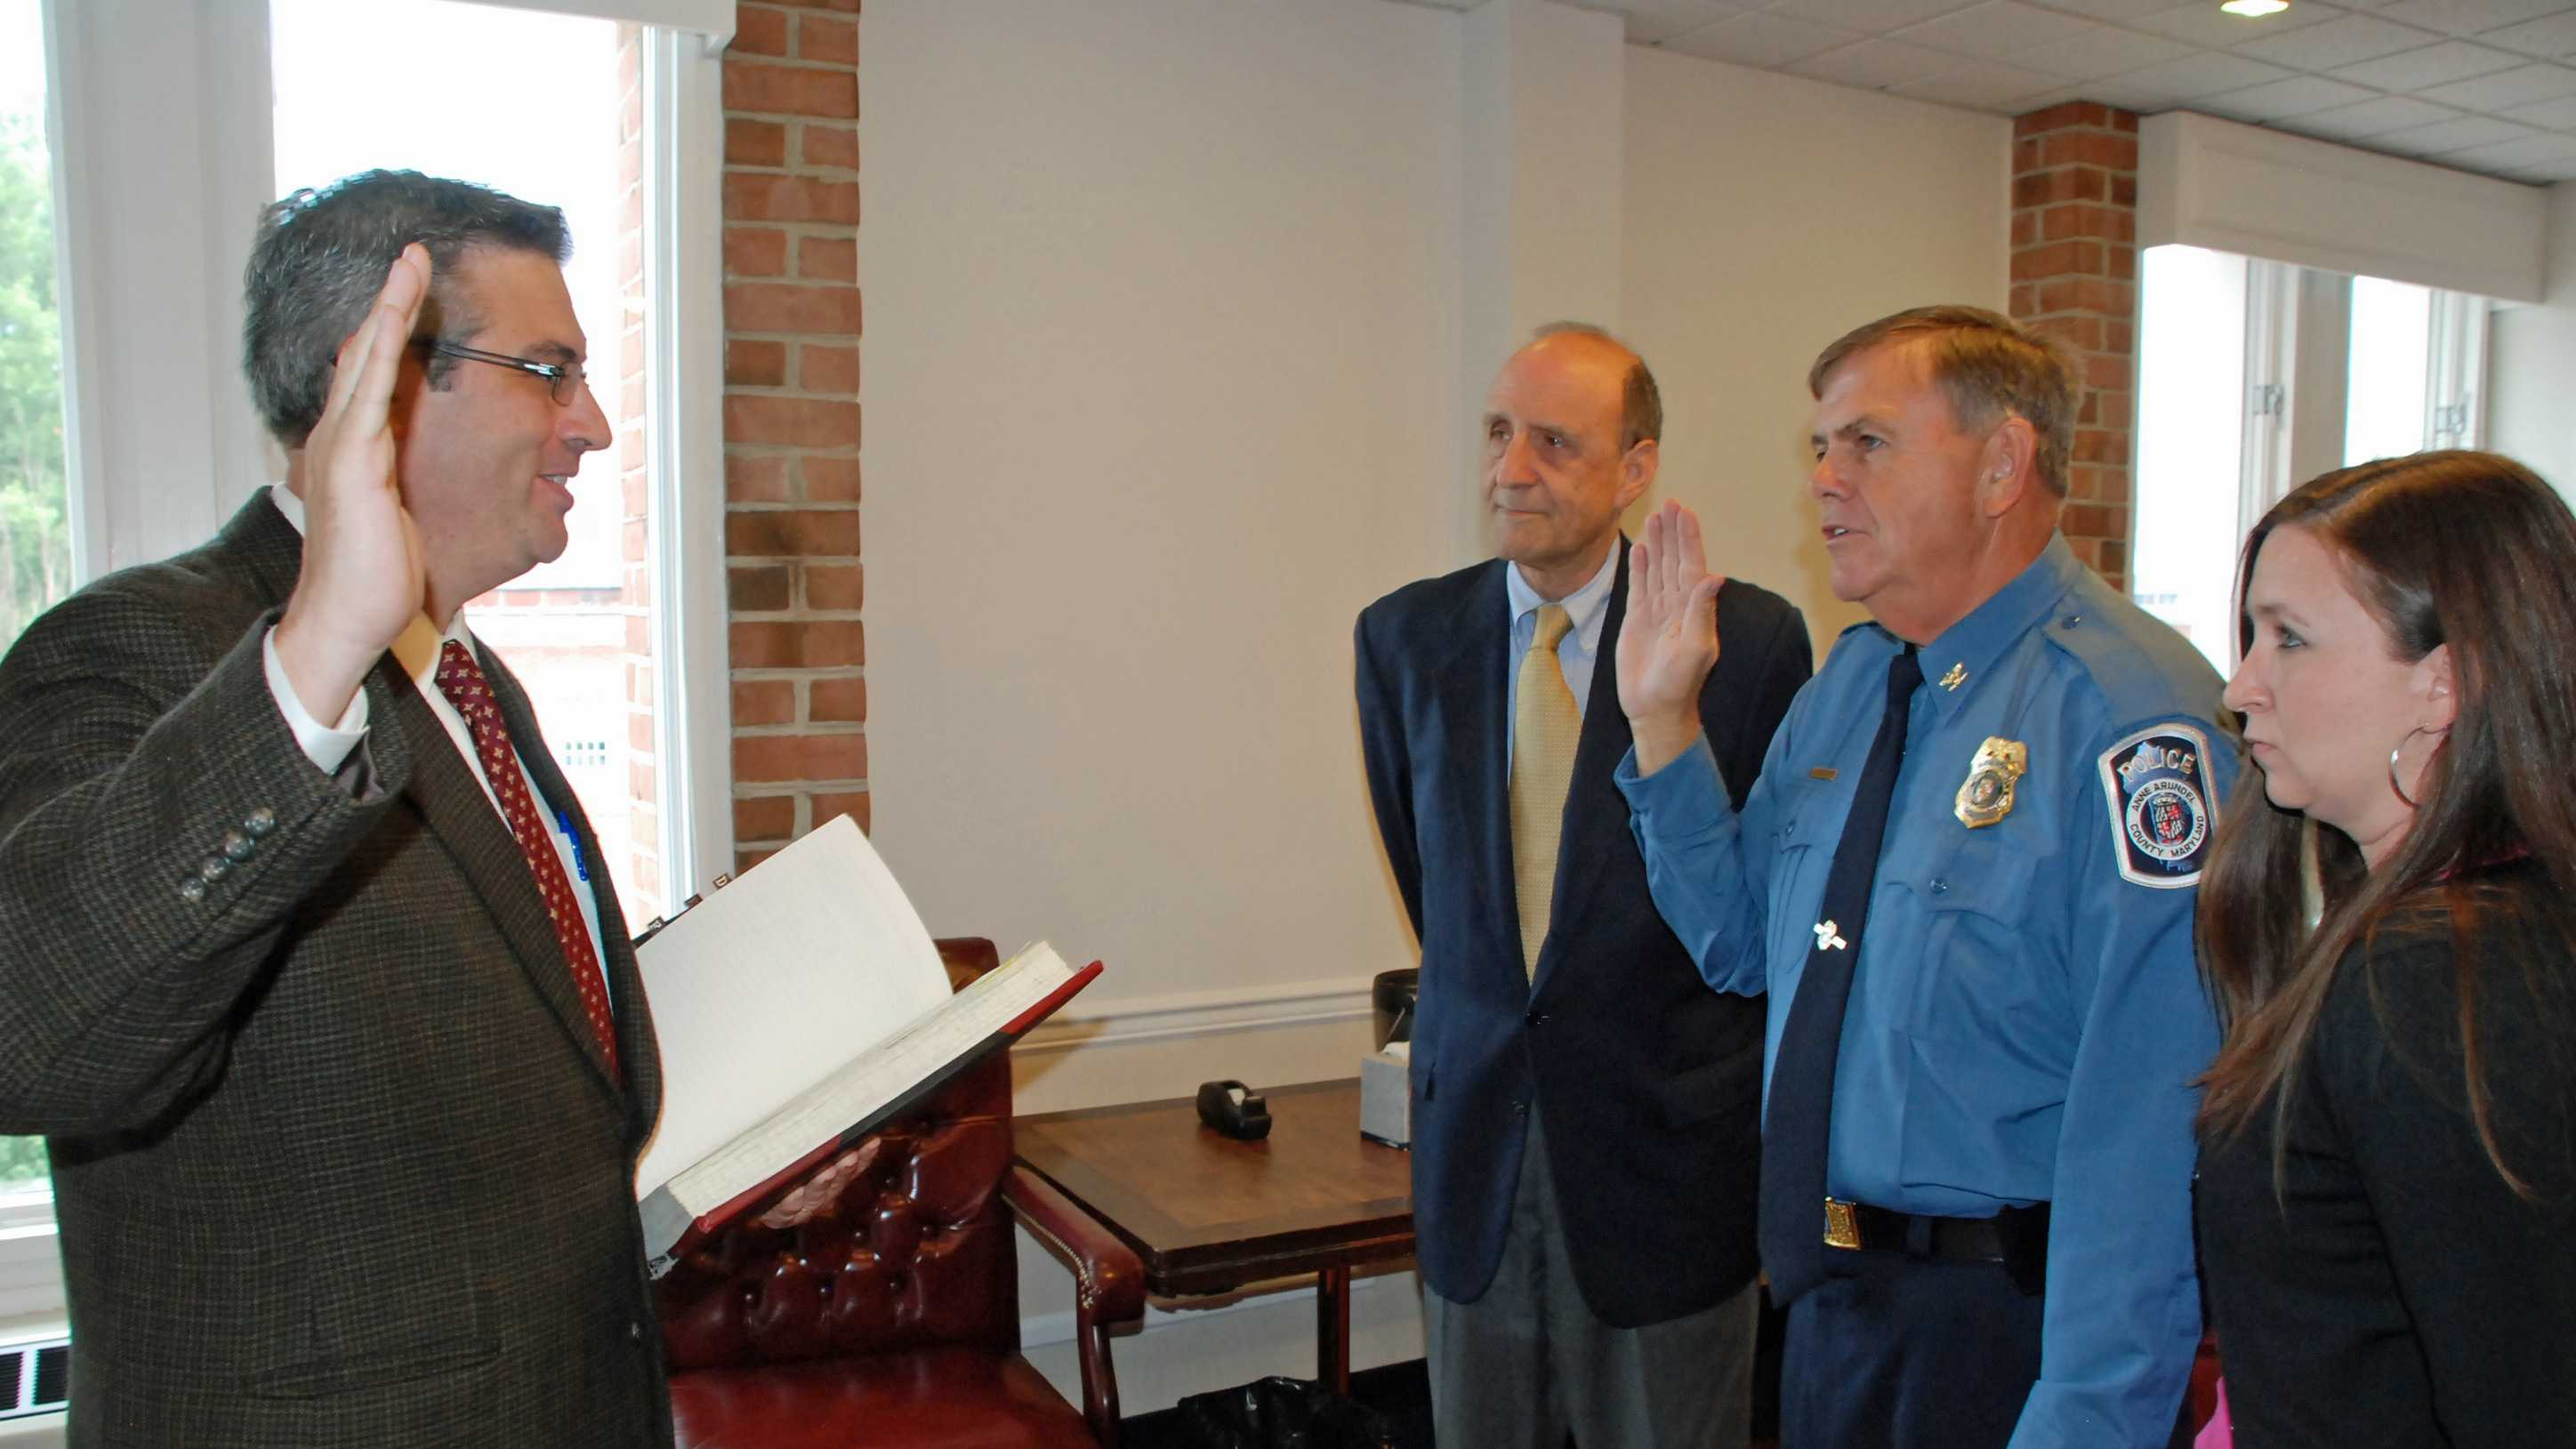 New Anne Arundel County Police Chief Larry W. Tolliver was sworn in Wednesday.